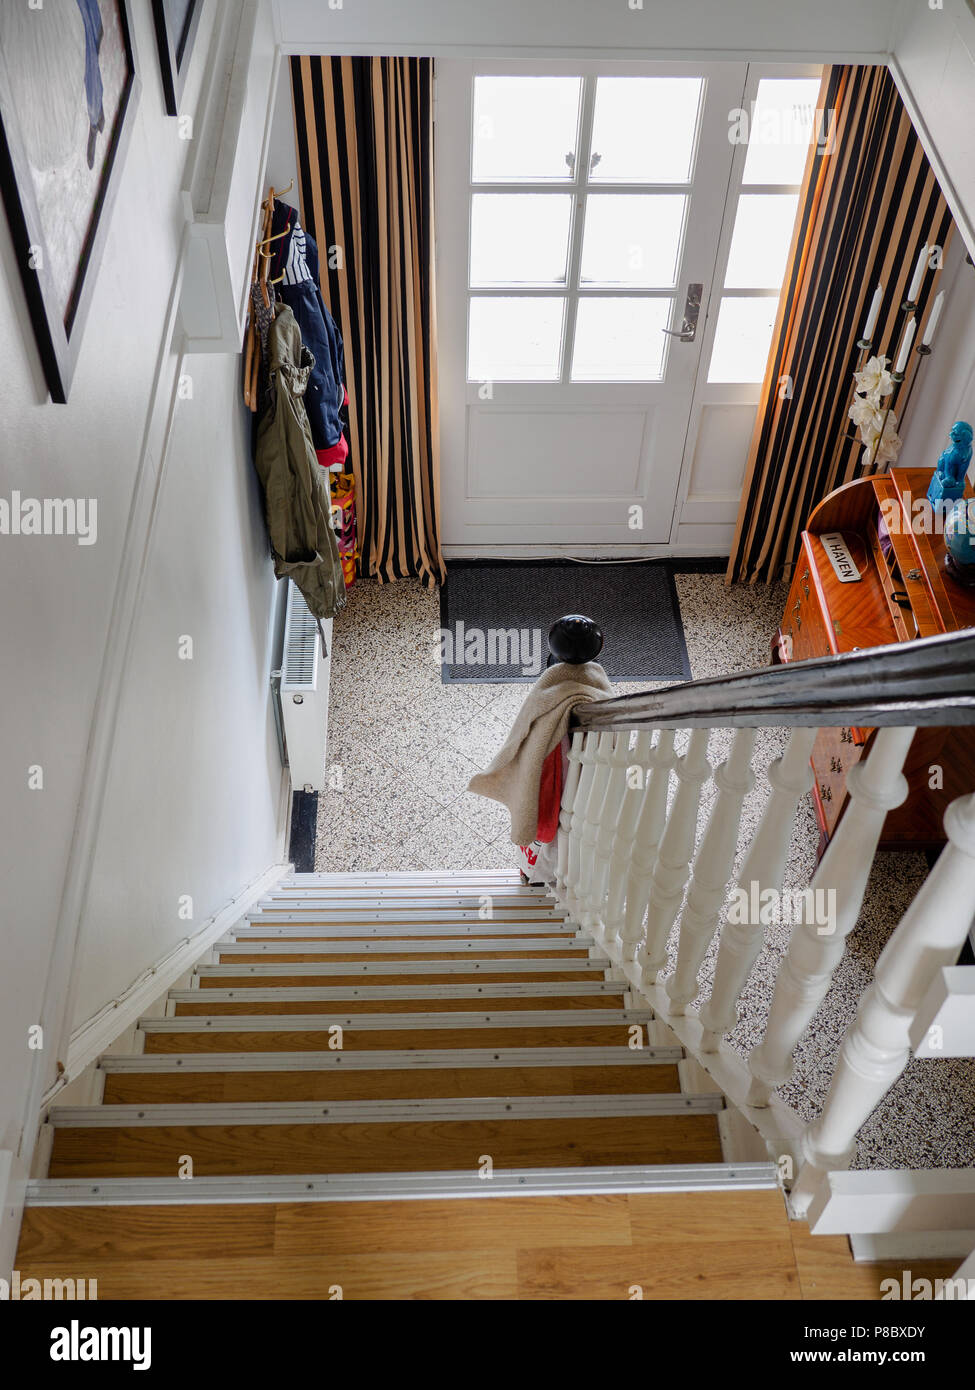 Interior staircase in front entrance of home, Aero Island, Denmark. - Stock Image